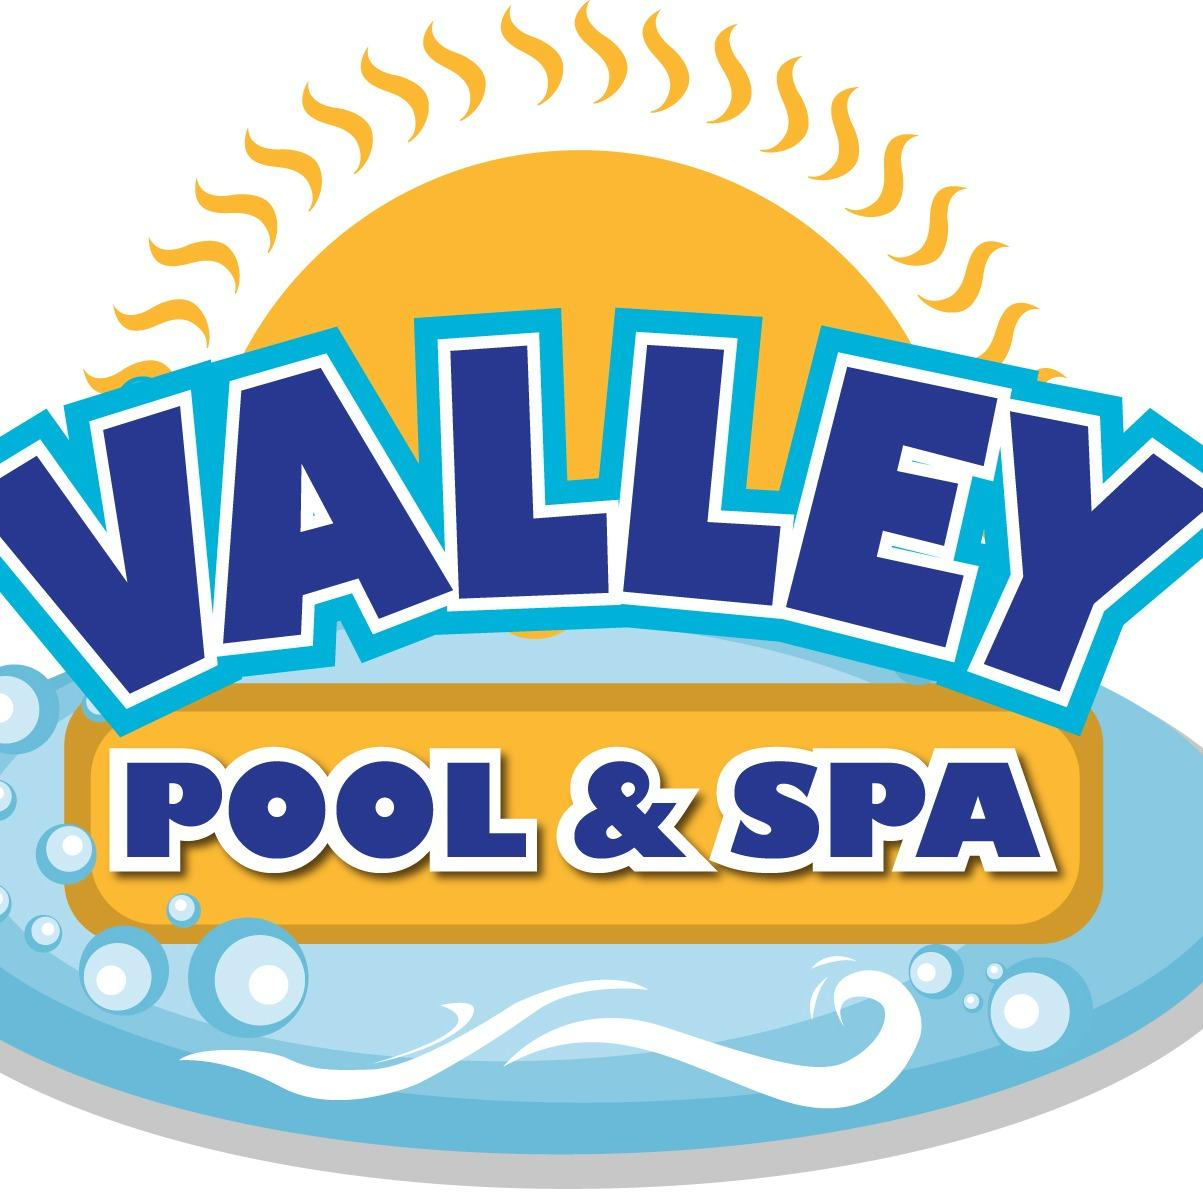 Valley Pool & Spa - North Hills